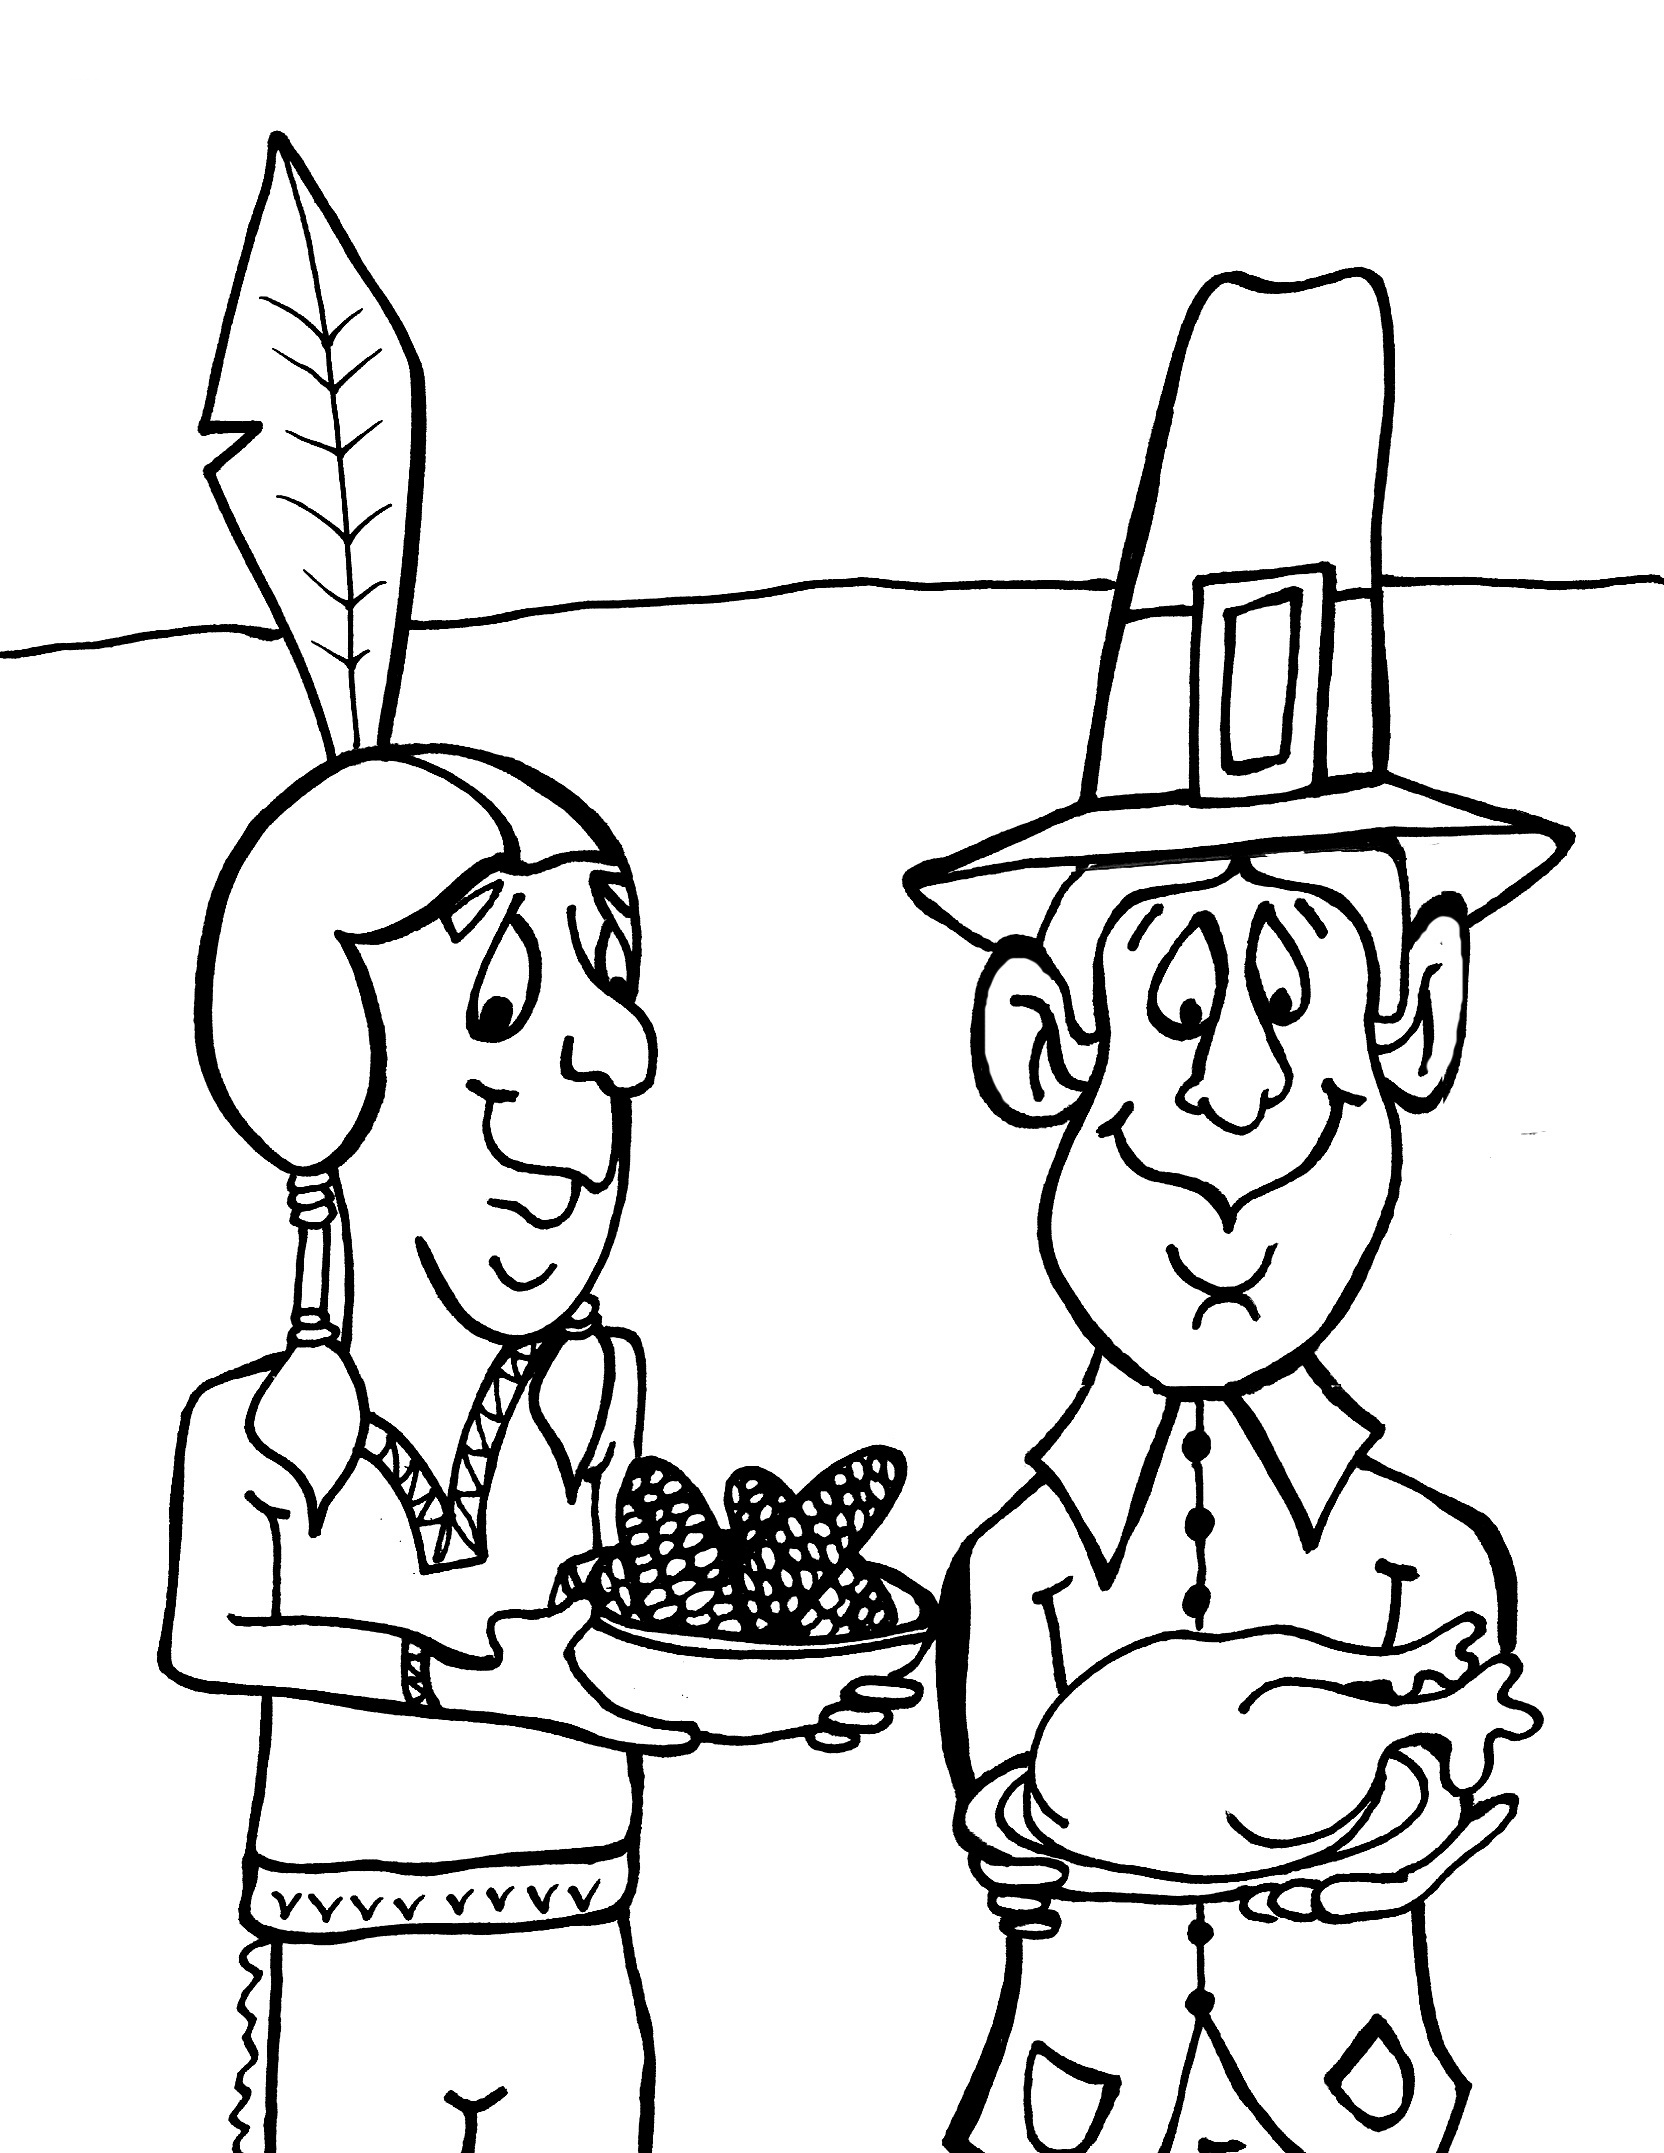 thanksgiving holiday coloring pages - photo#20